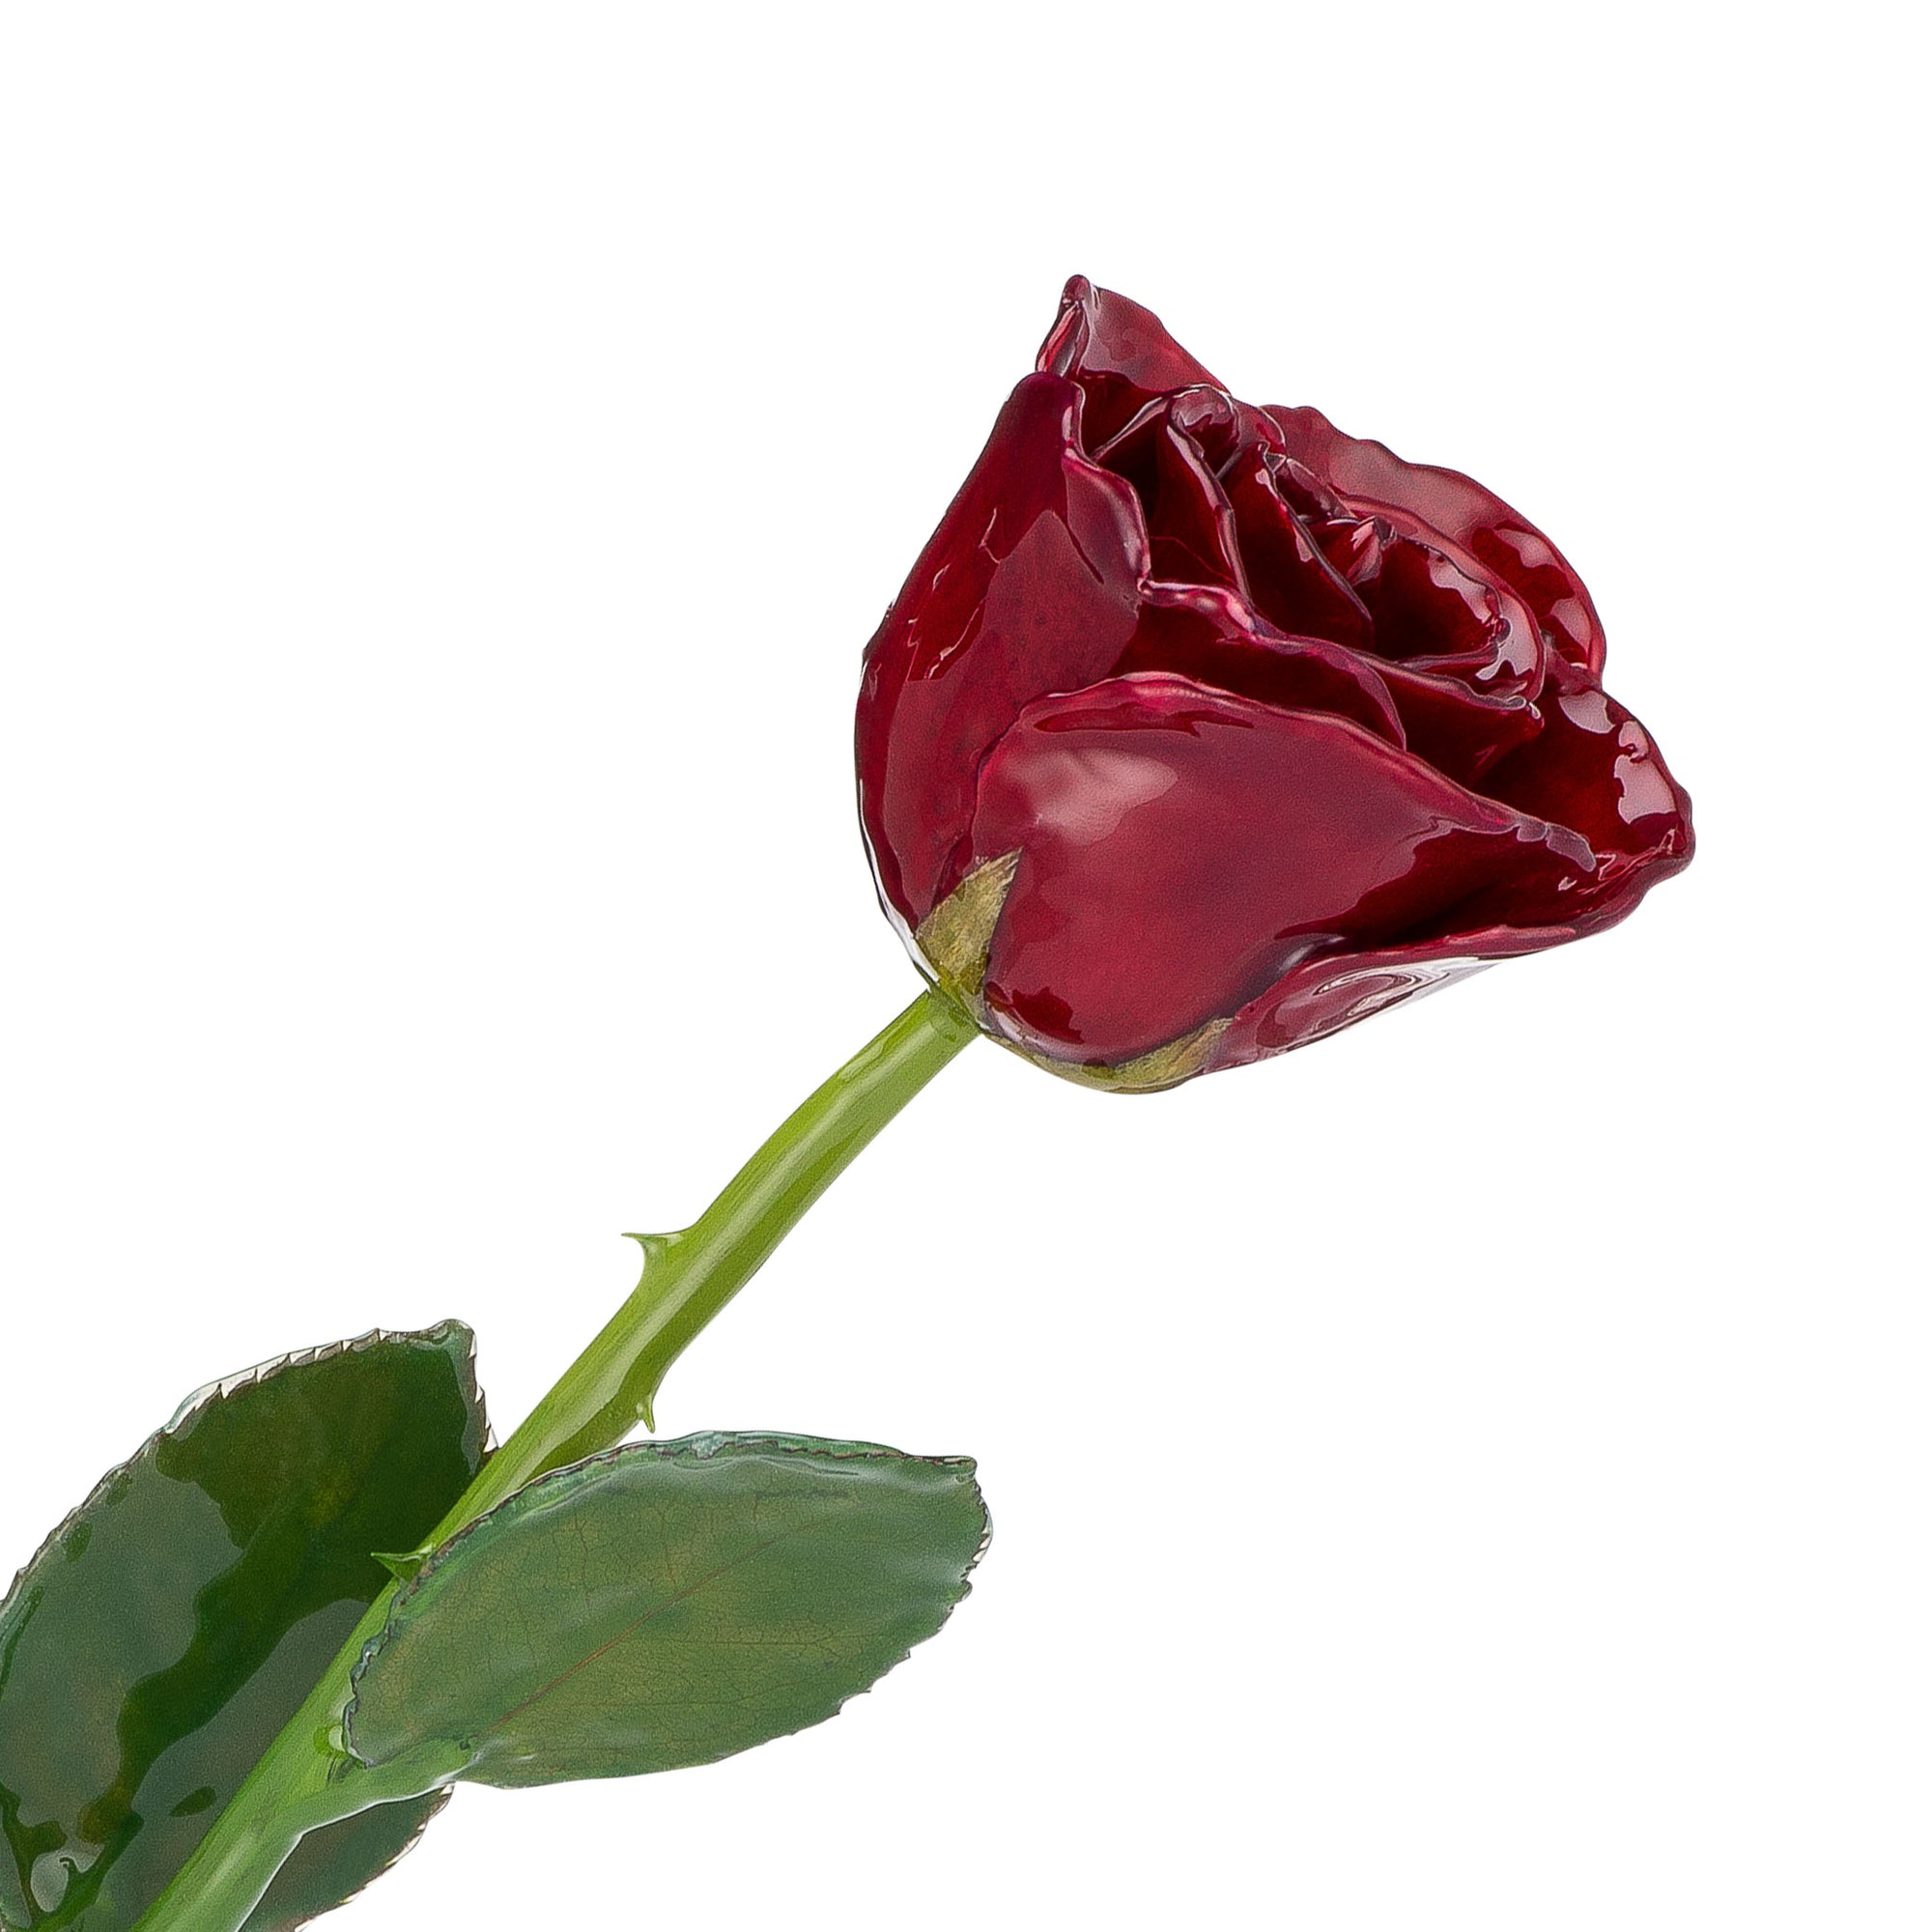 Natural (Green Stem) Forever Rose with Deep Red, Burgundy Colored Petals. View of Stem, Leaves, and Rose Petals. This a Forever Rose without any gold or other precious metals on it.